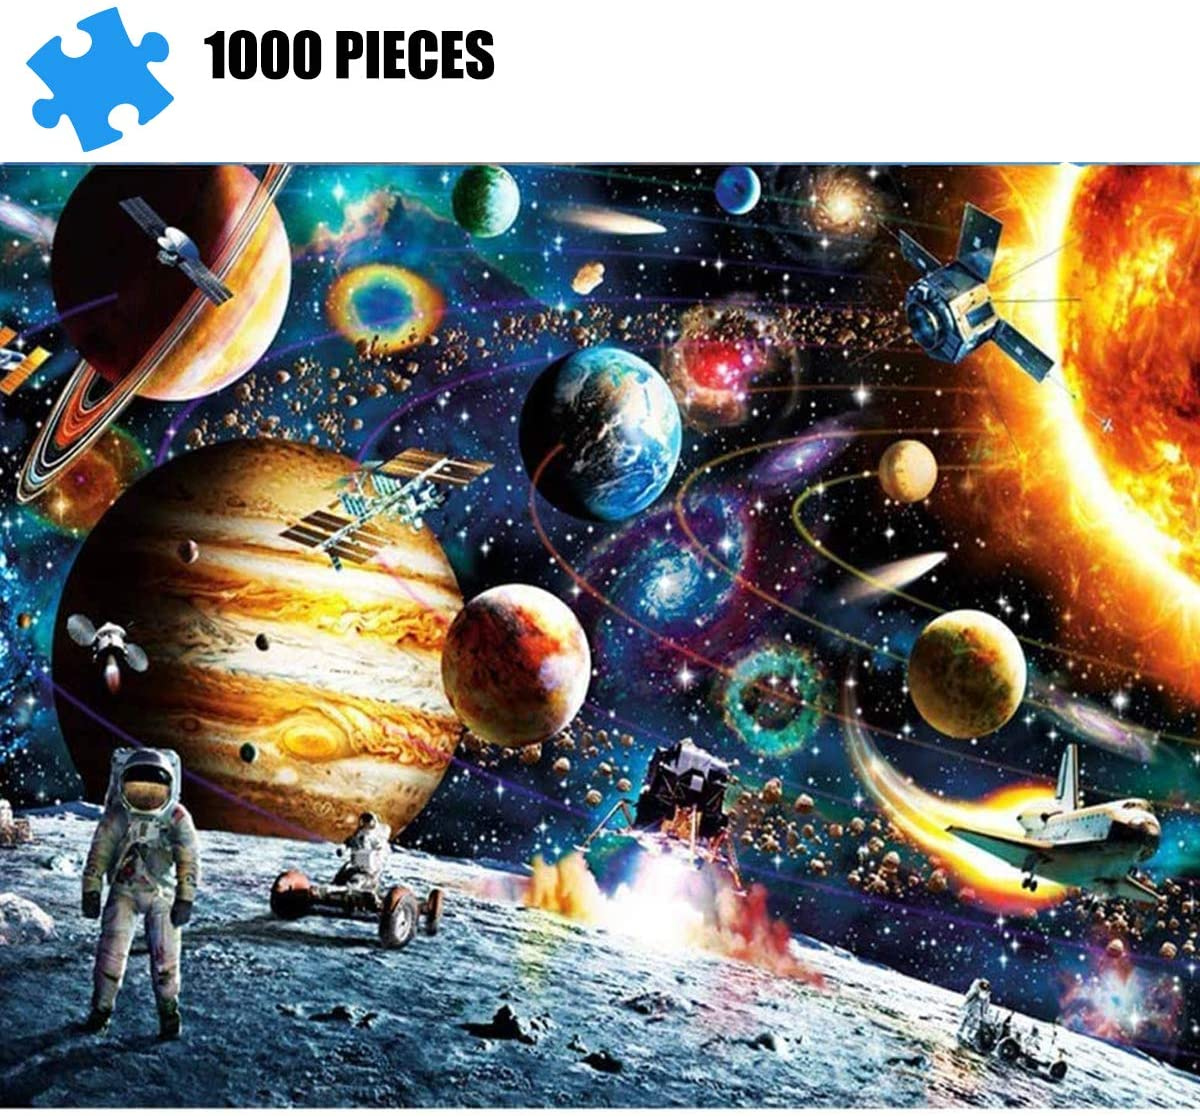 Puzzles for Adults 1000 Piece Jigsaw Puzzle - Outer Space, Educational Intellectual Decompressing Toy Fun Family Game for Kids Adults